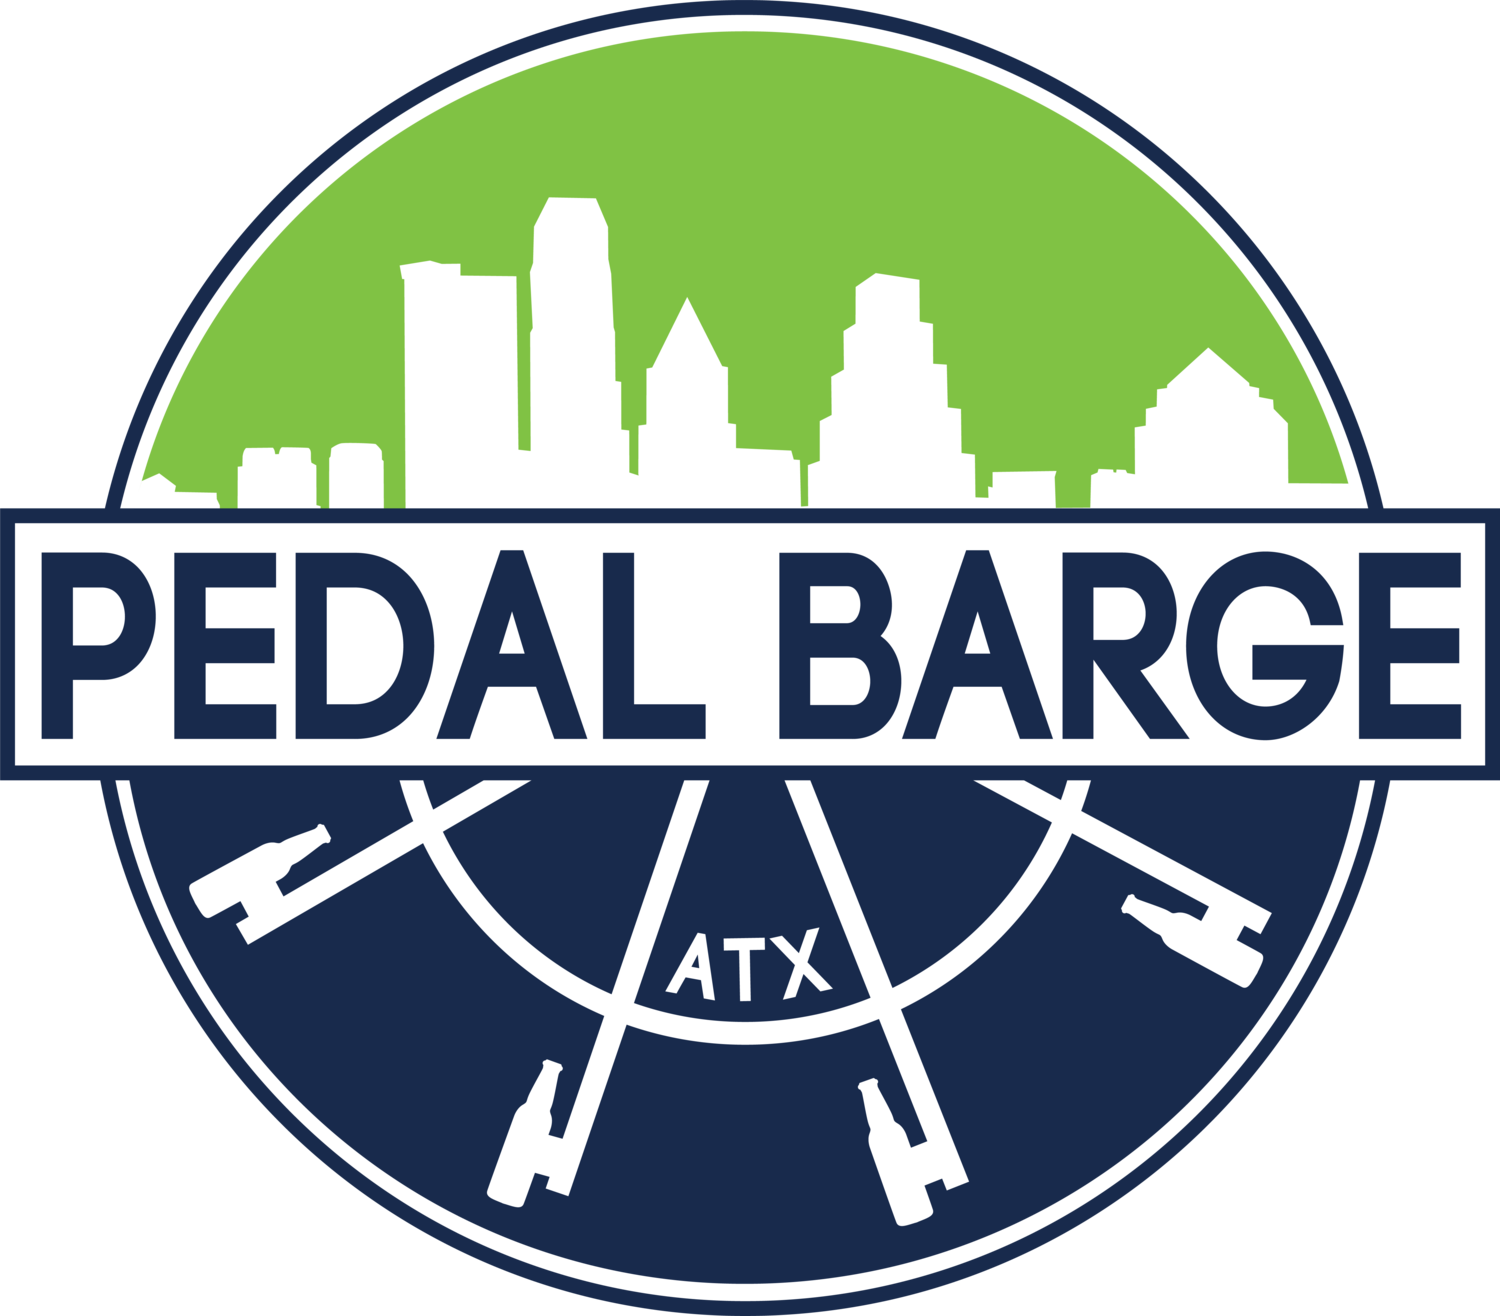 Pedal Barge